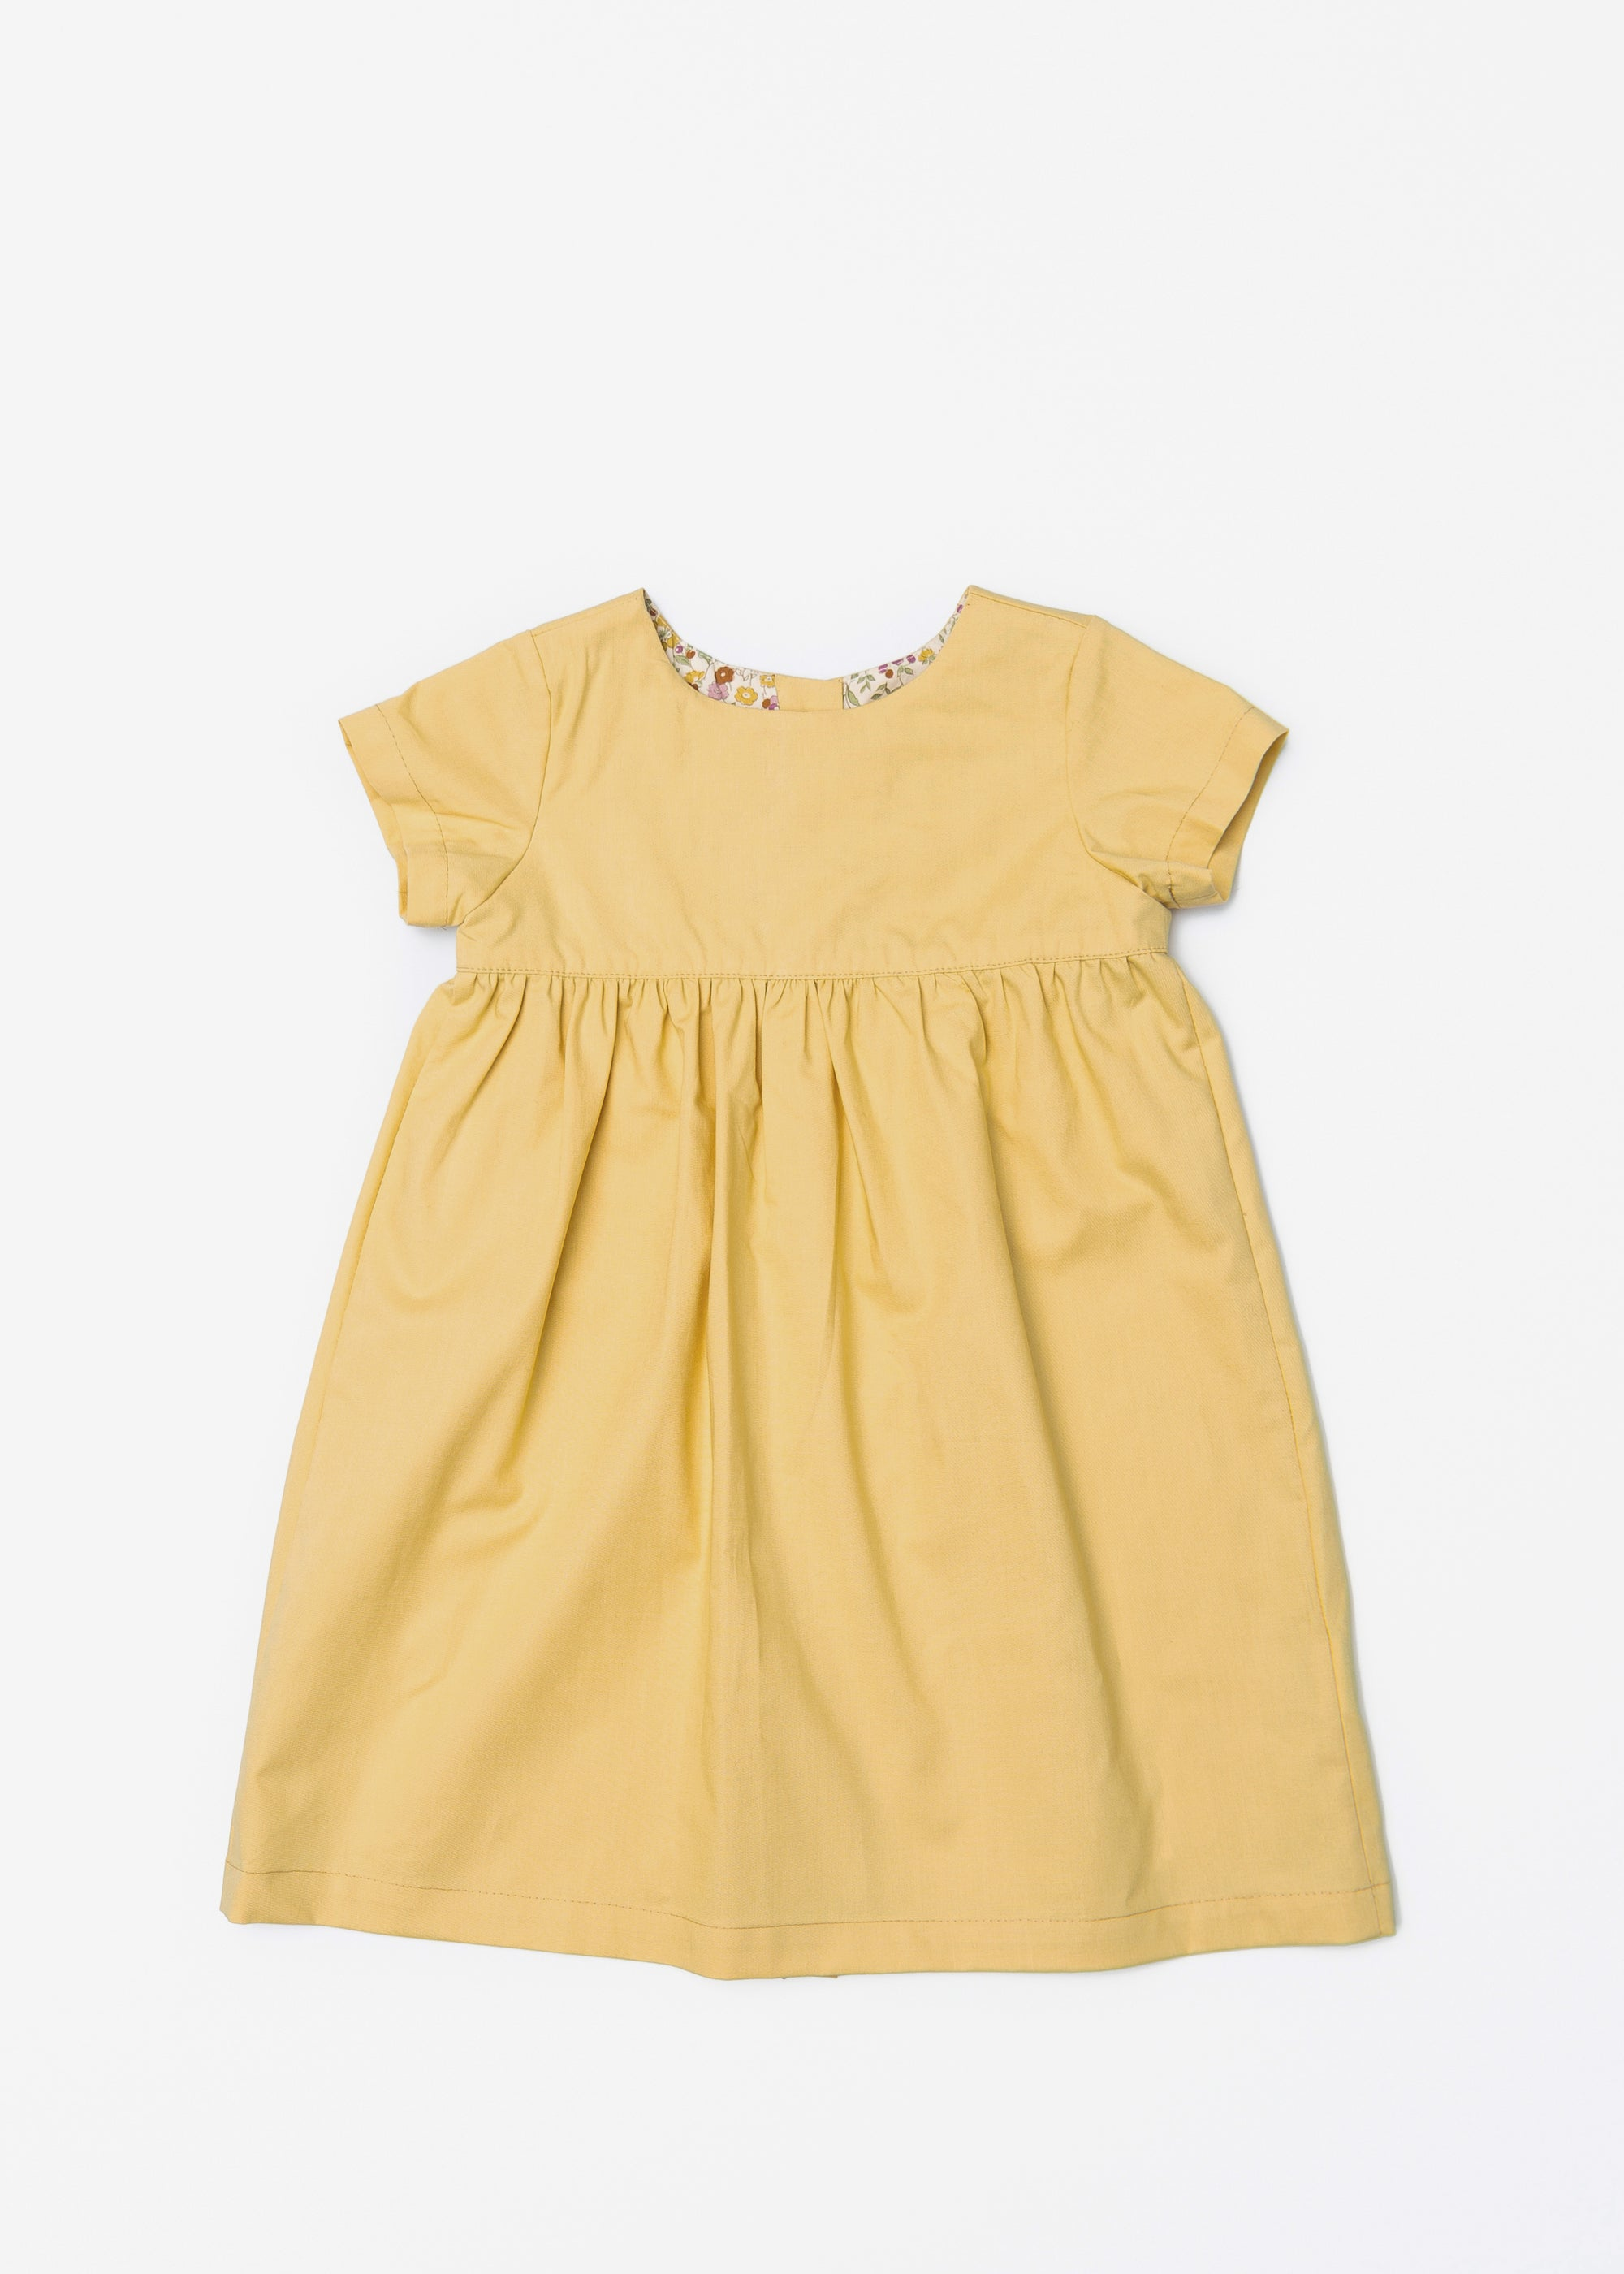 The Dolly Dress in Mustard